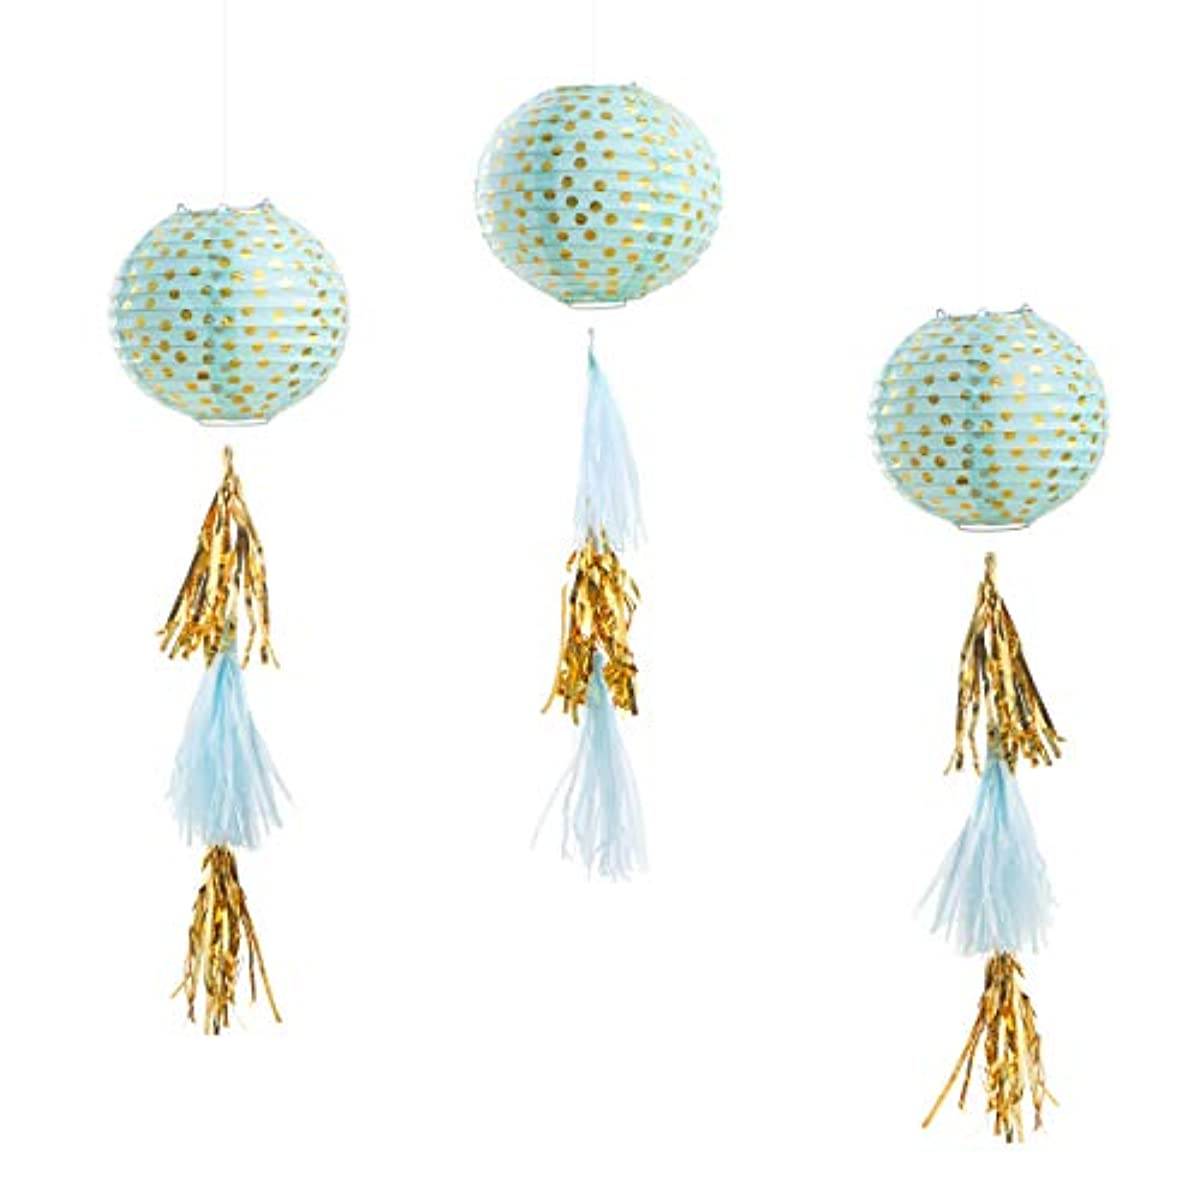 Darice 30030475 Paper Lanterns with Tassels Kit: Gold & Mint Green Party Decorations Gold/Mint